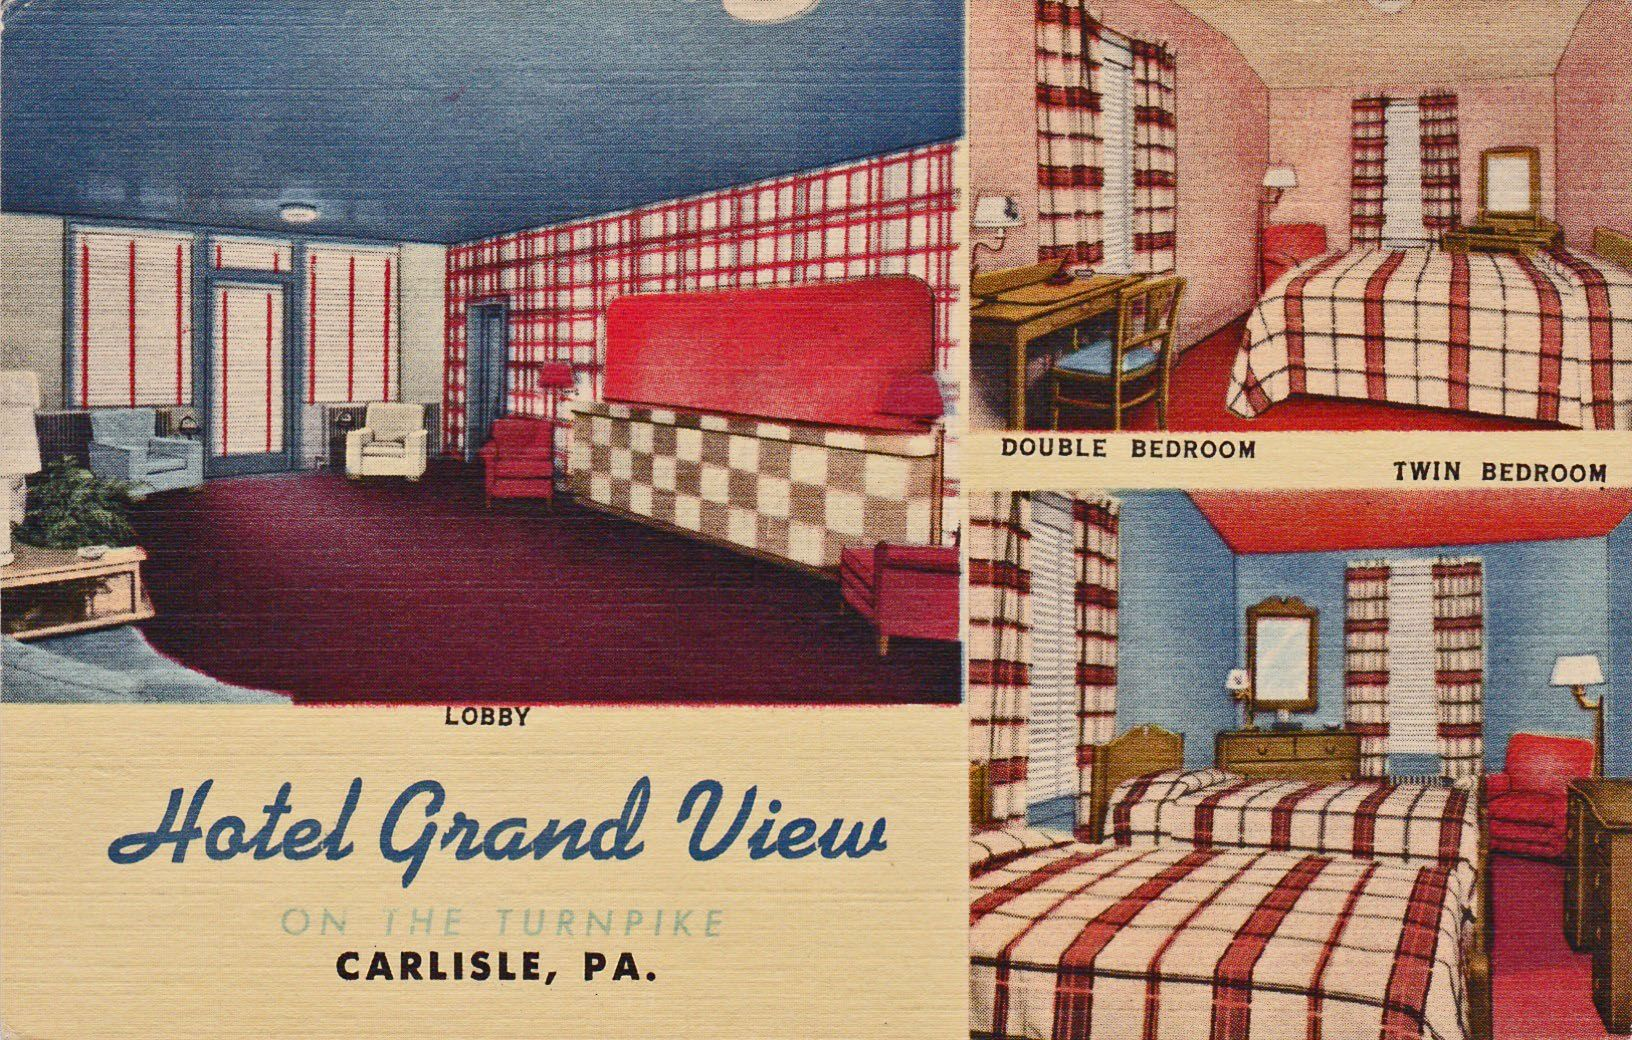 Grand View Hotel Carlisle Pa Located Opposite The